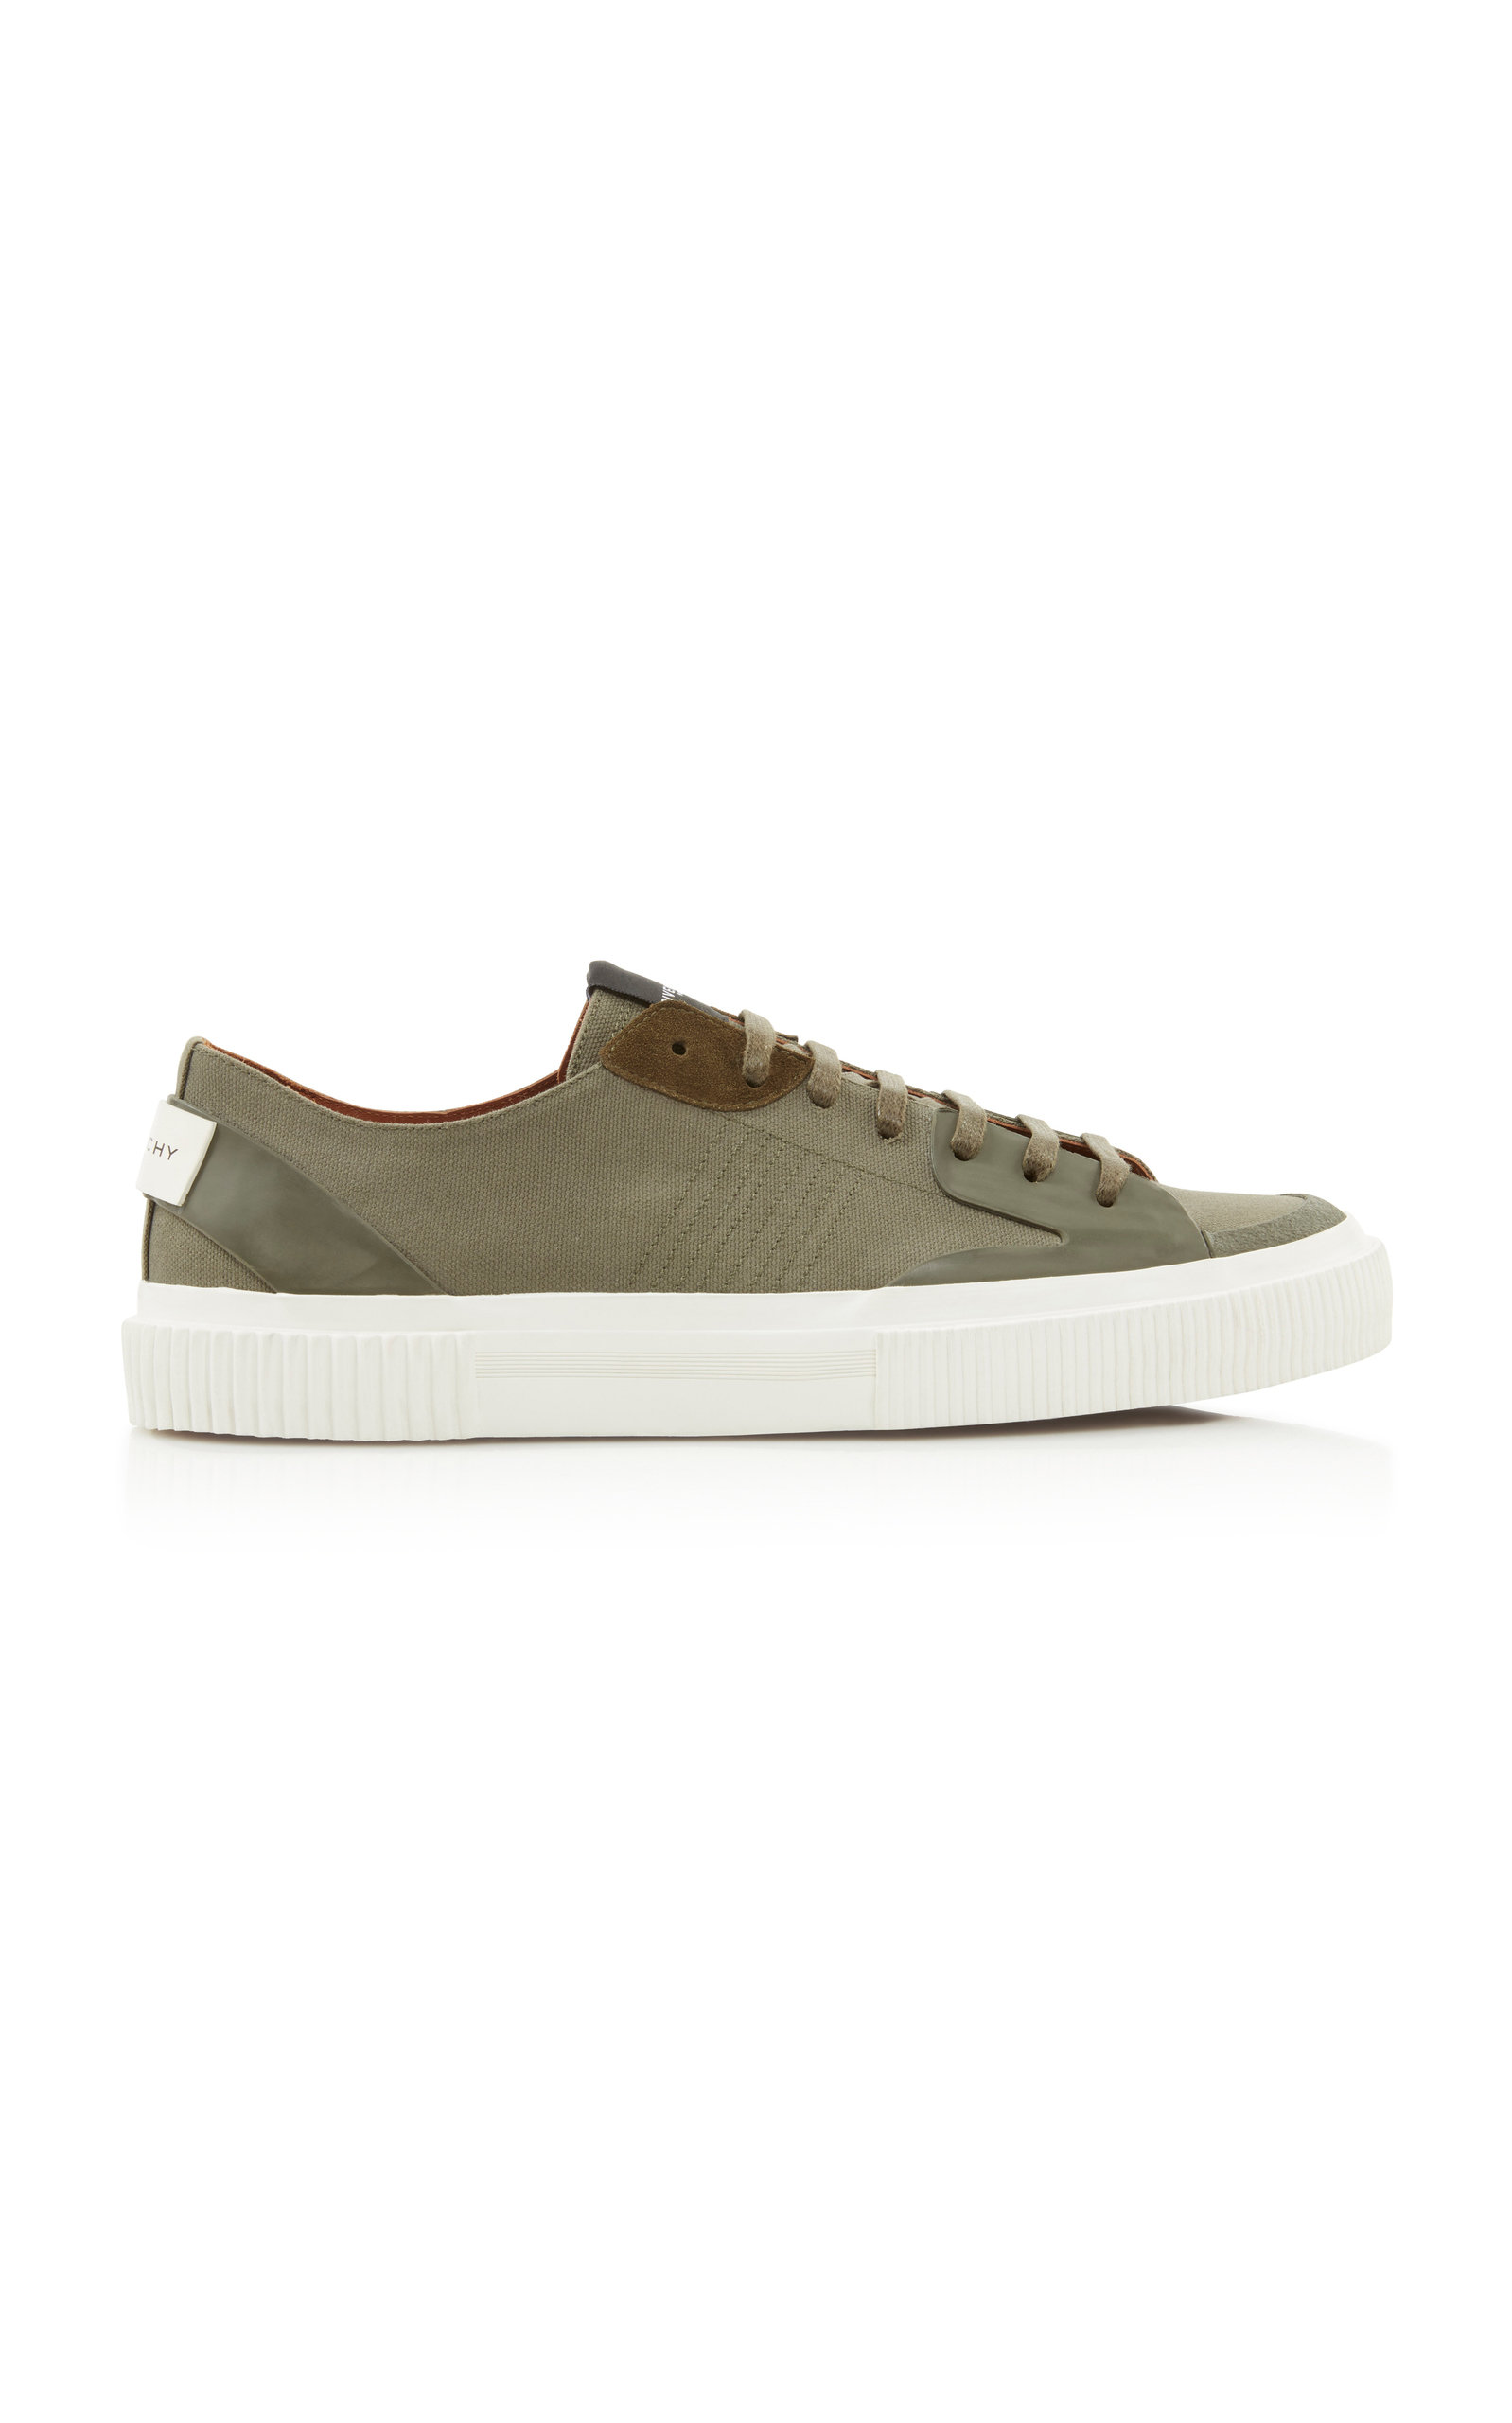 GIVENCHY | Givenchy Tennis Canvas Sneakers | Goxip